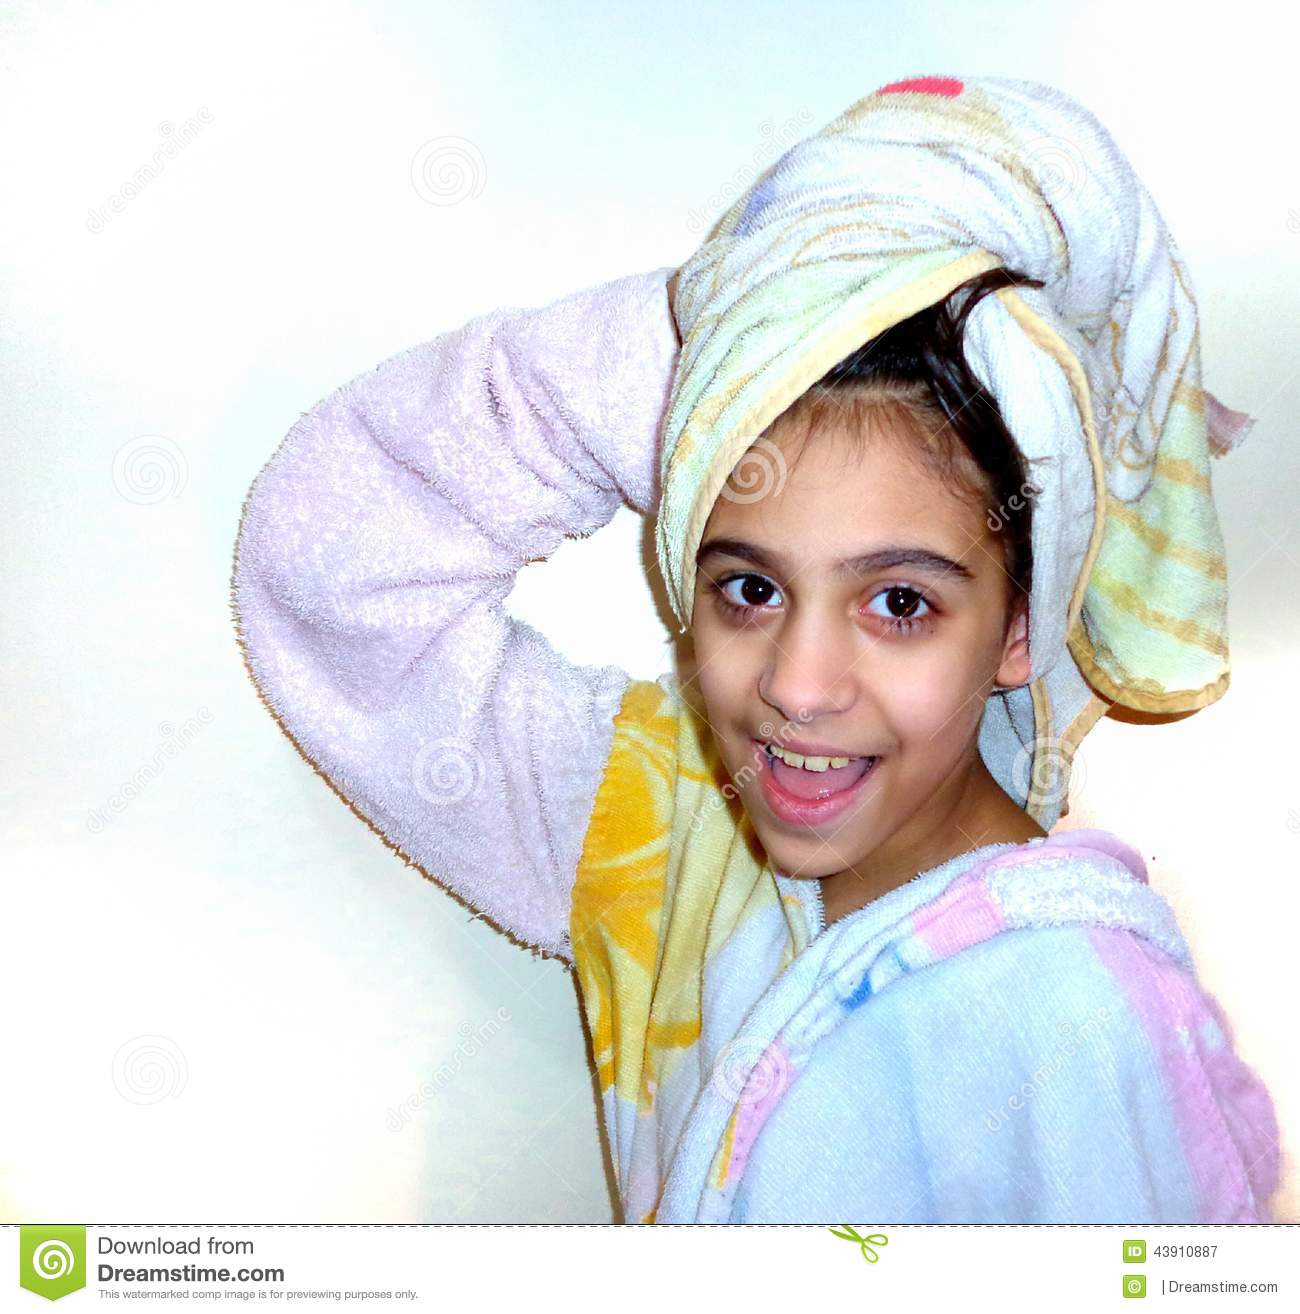 Girl out of the shower